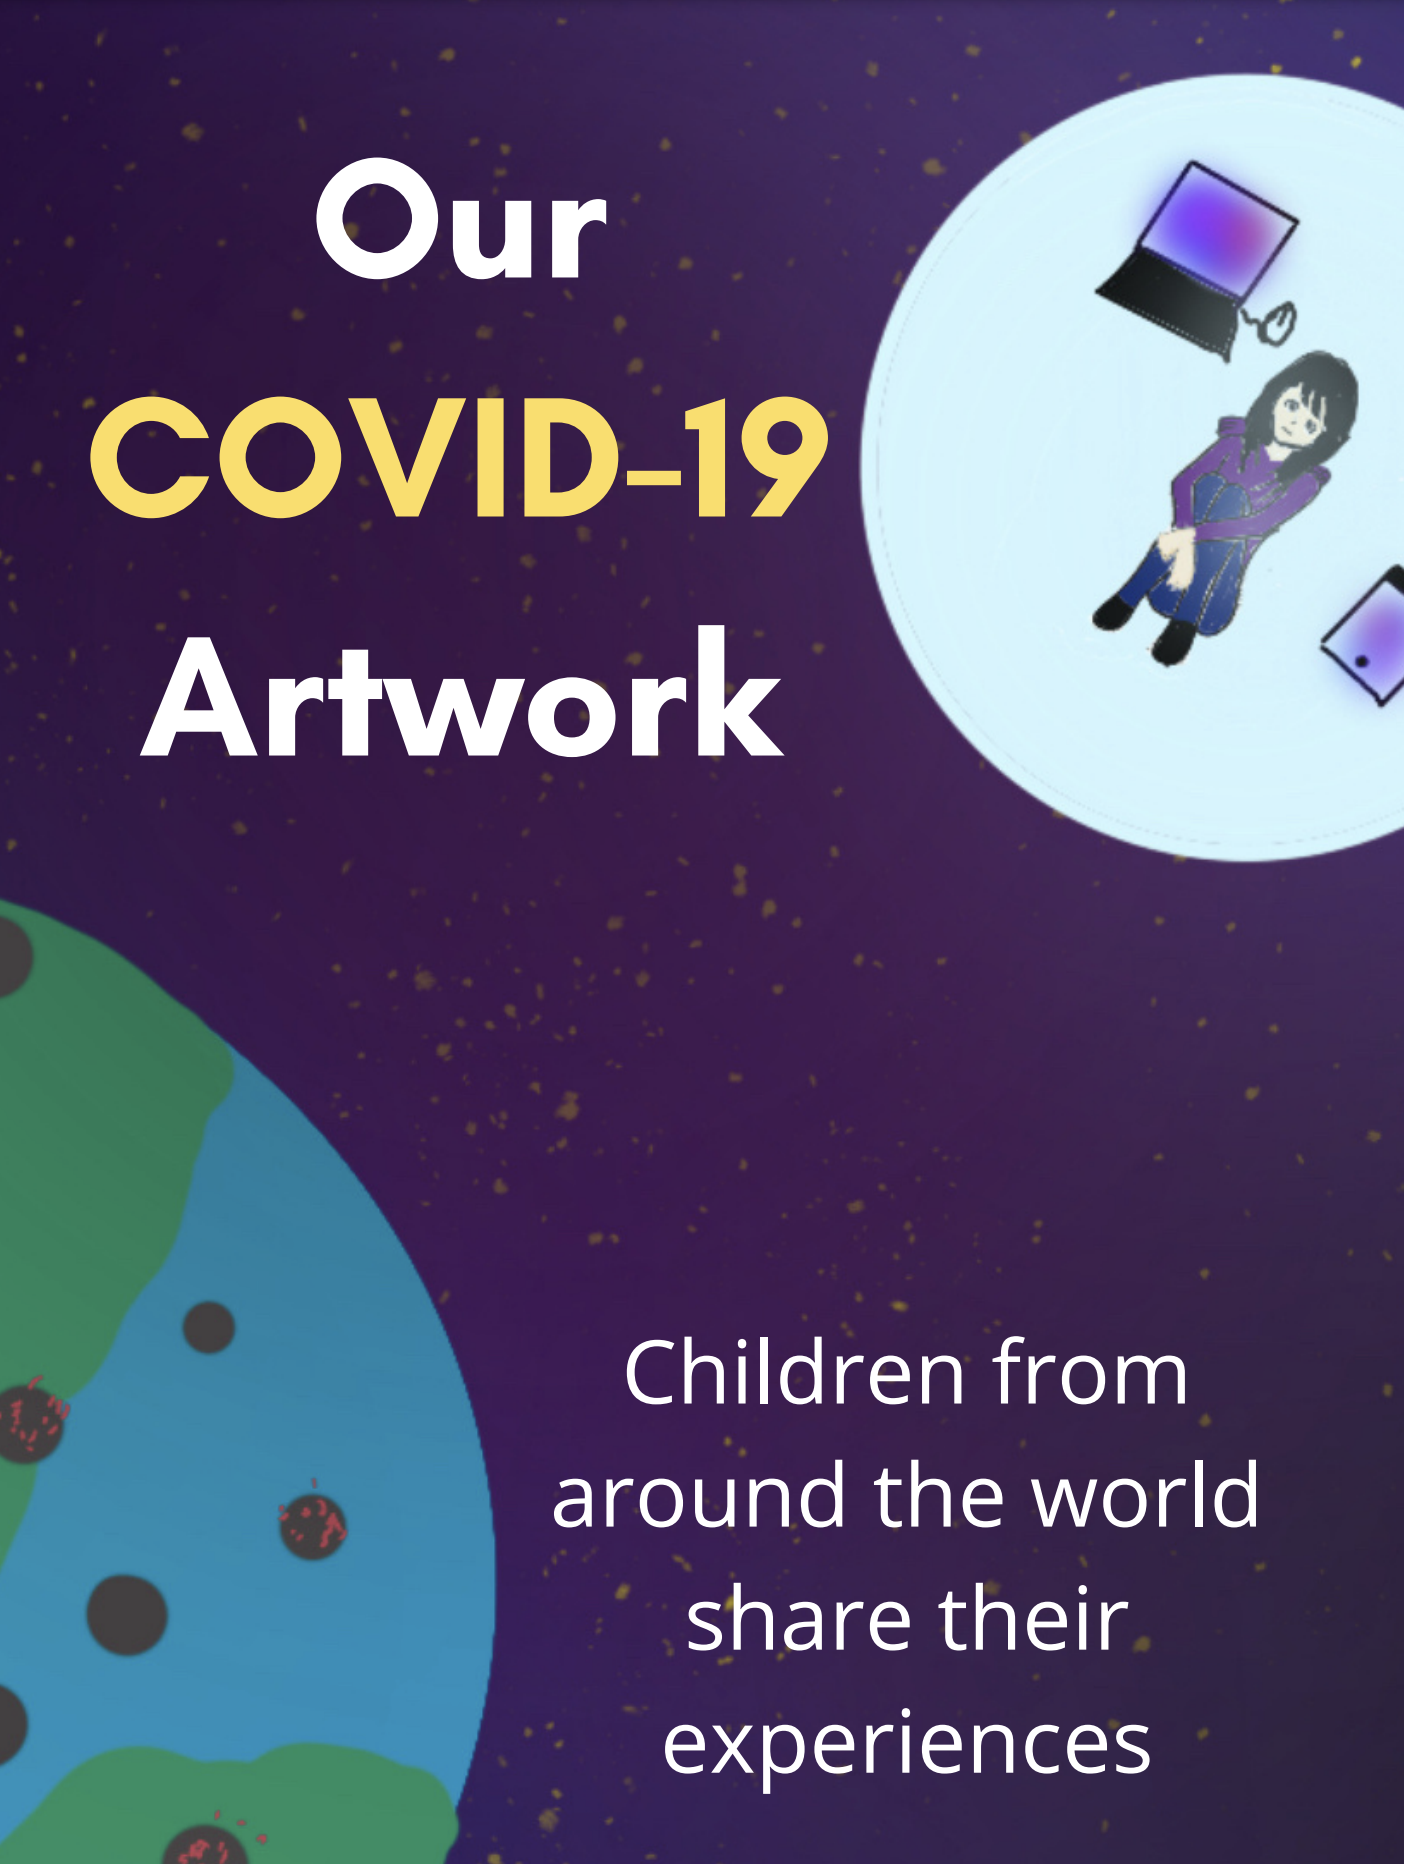 Our COVID-19 artwork: children from around the world share their experiences